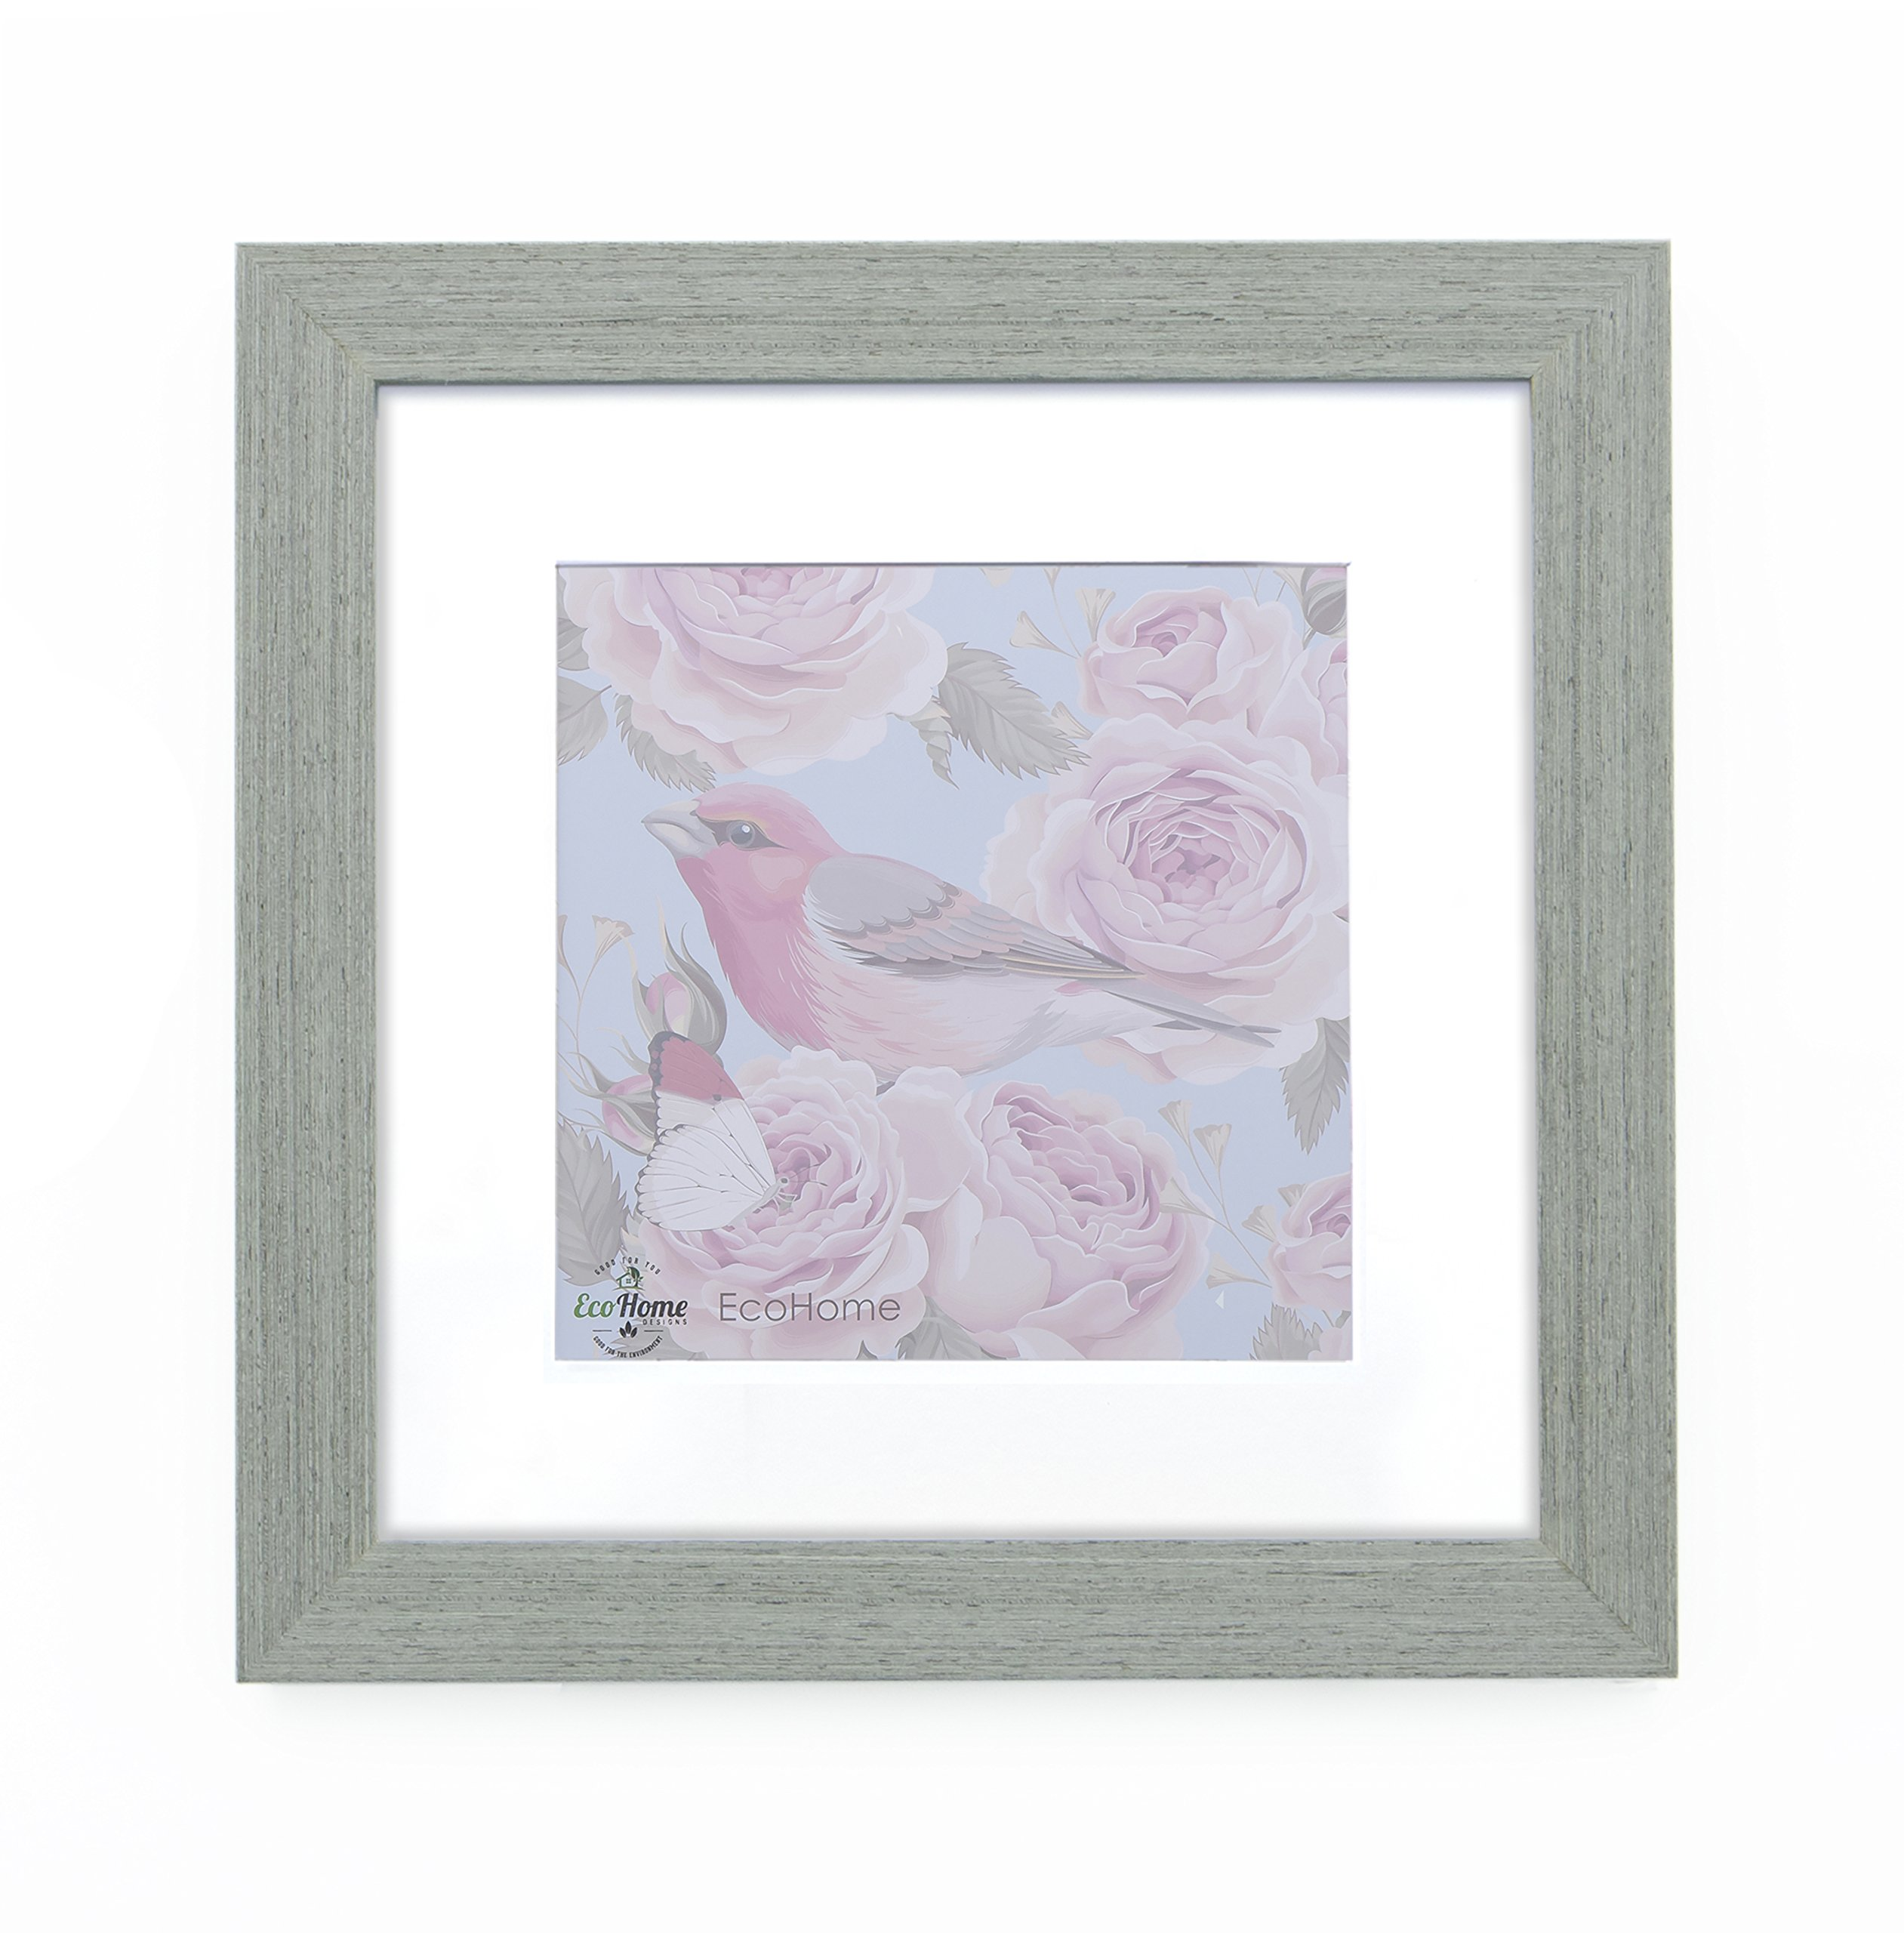 11x11 Picture Frame Square Grey - Barnwood Matted to 8x8 Instagram Photo, Frames by EcoHome